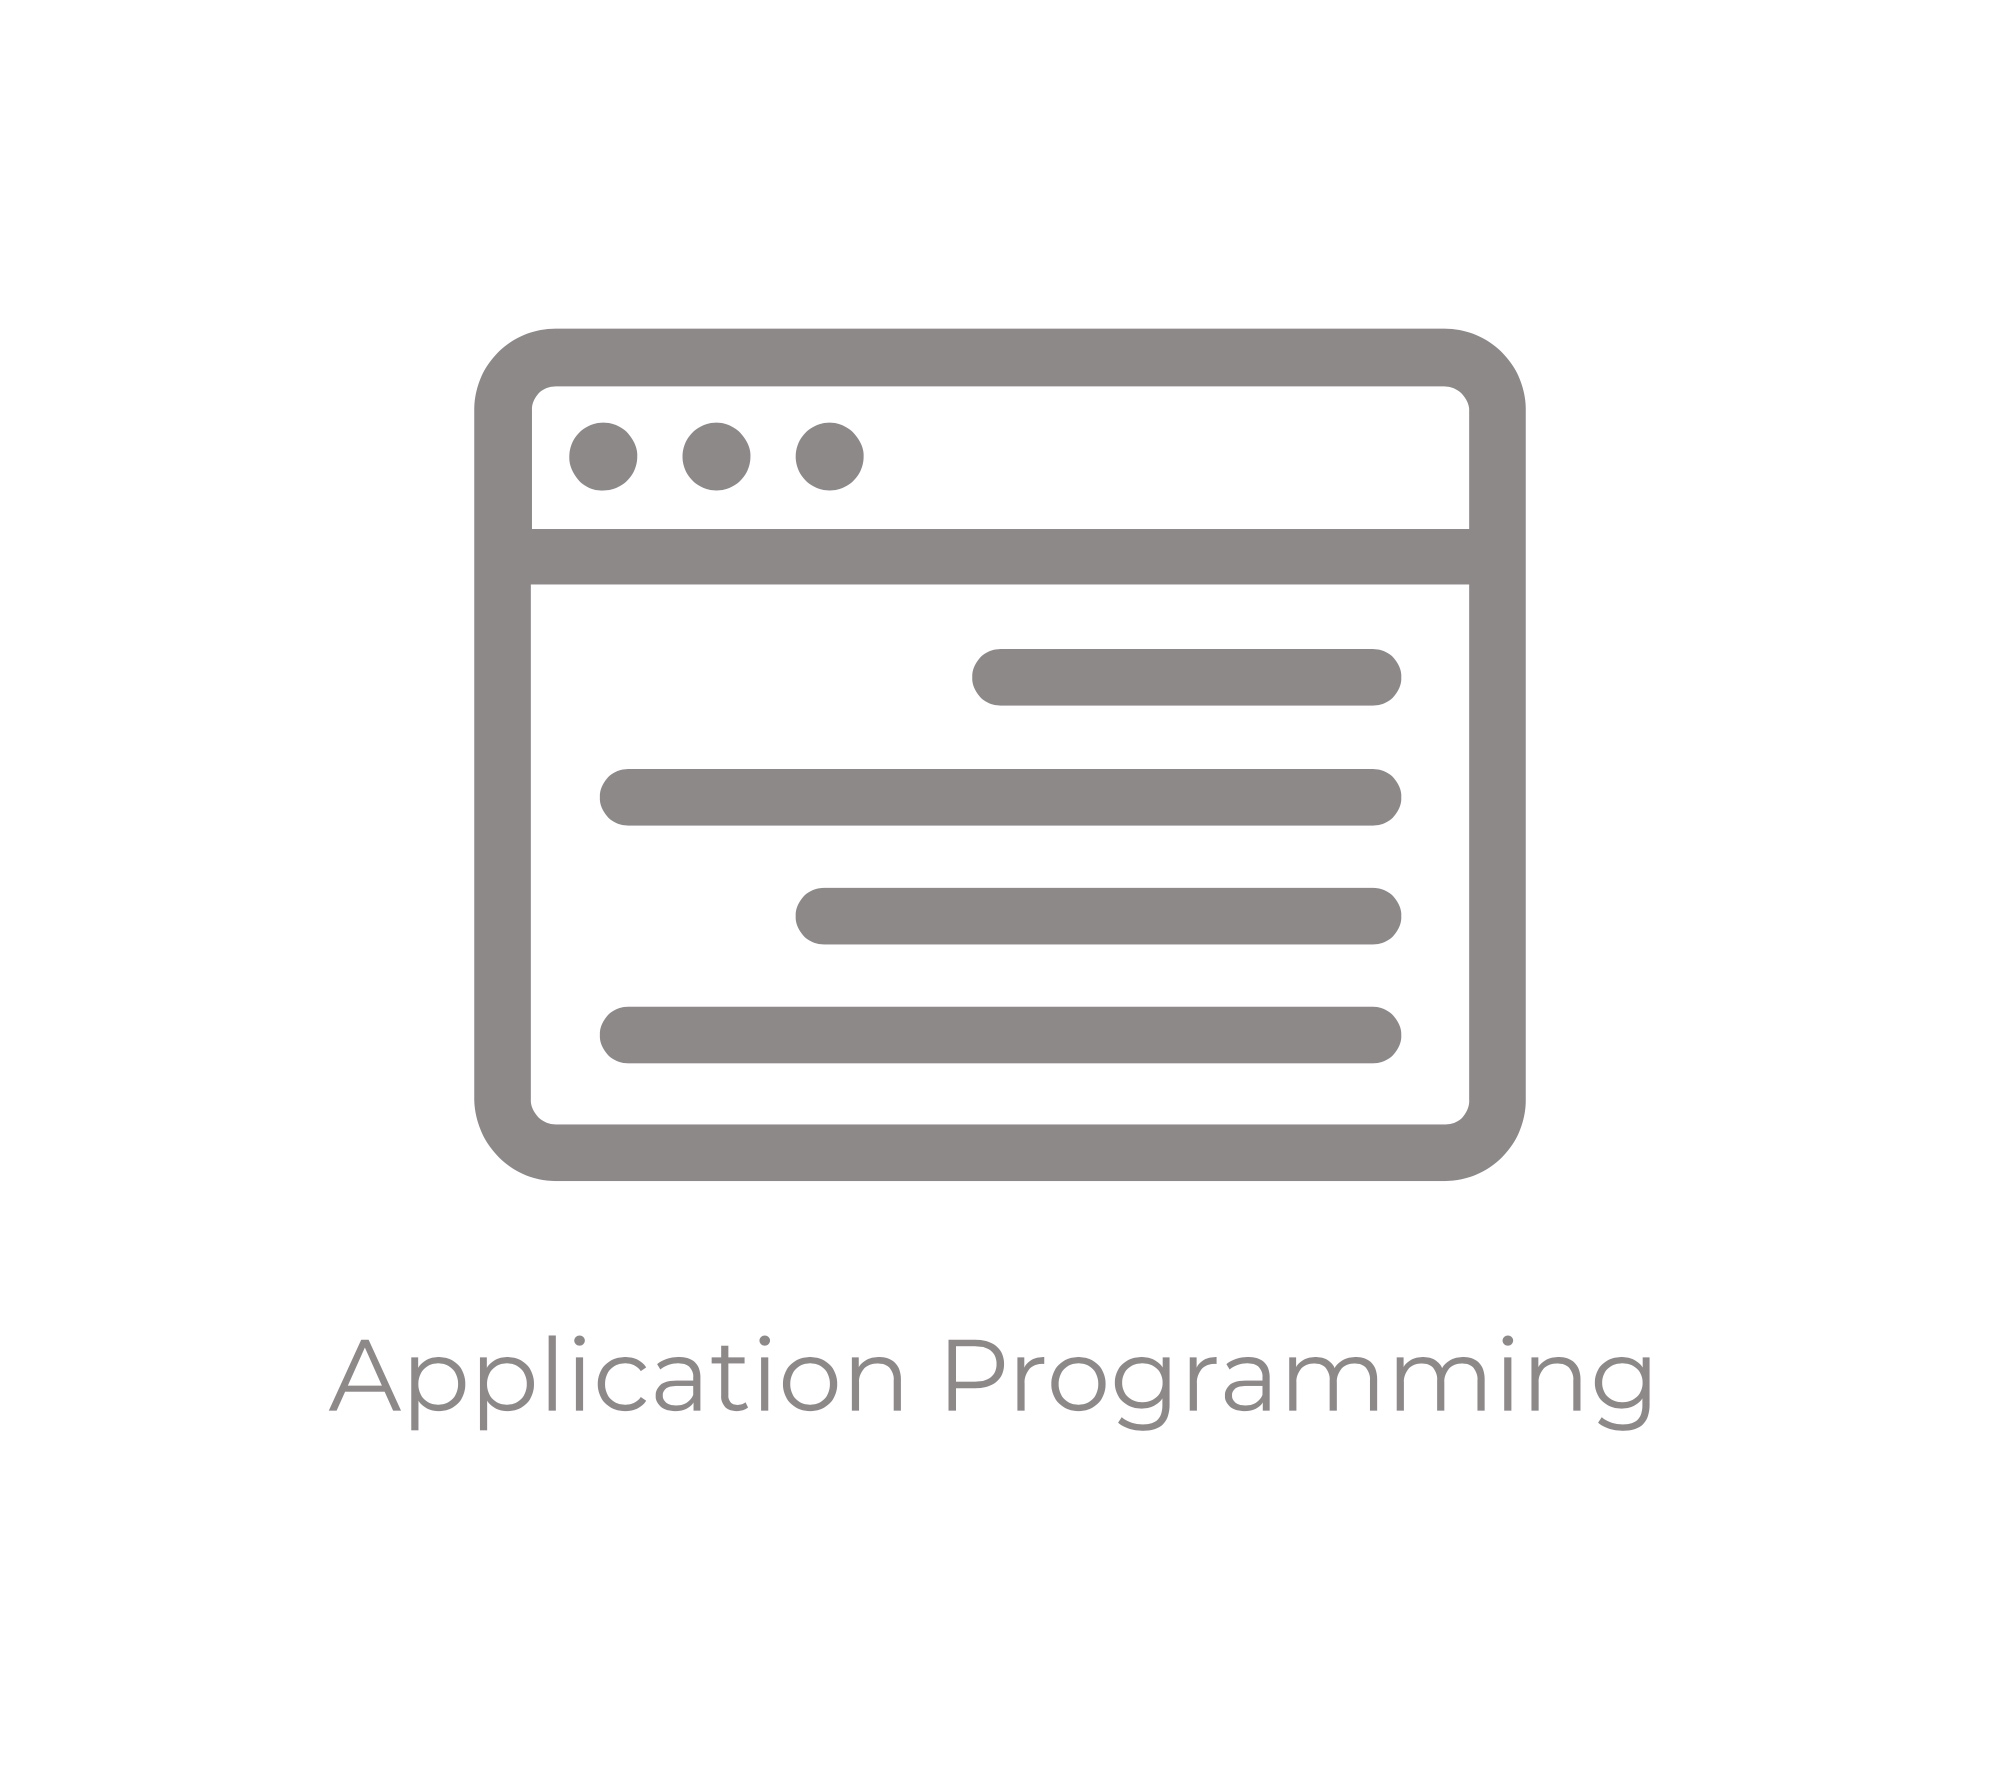 Application+Programming-logo-2.jpg